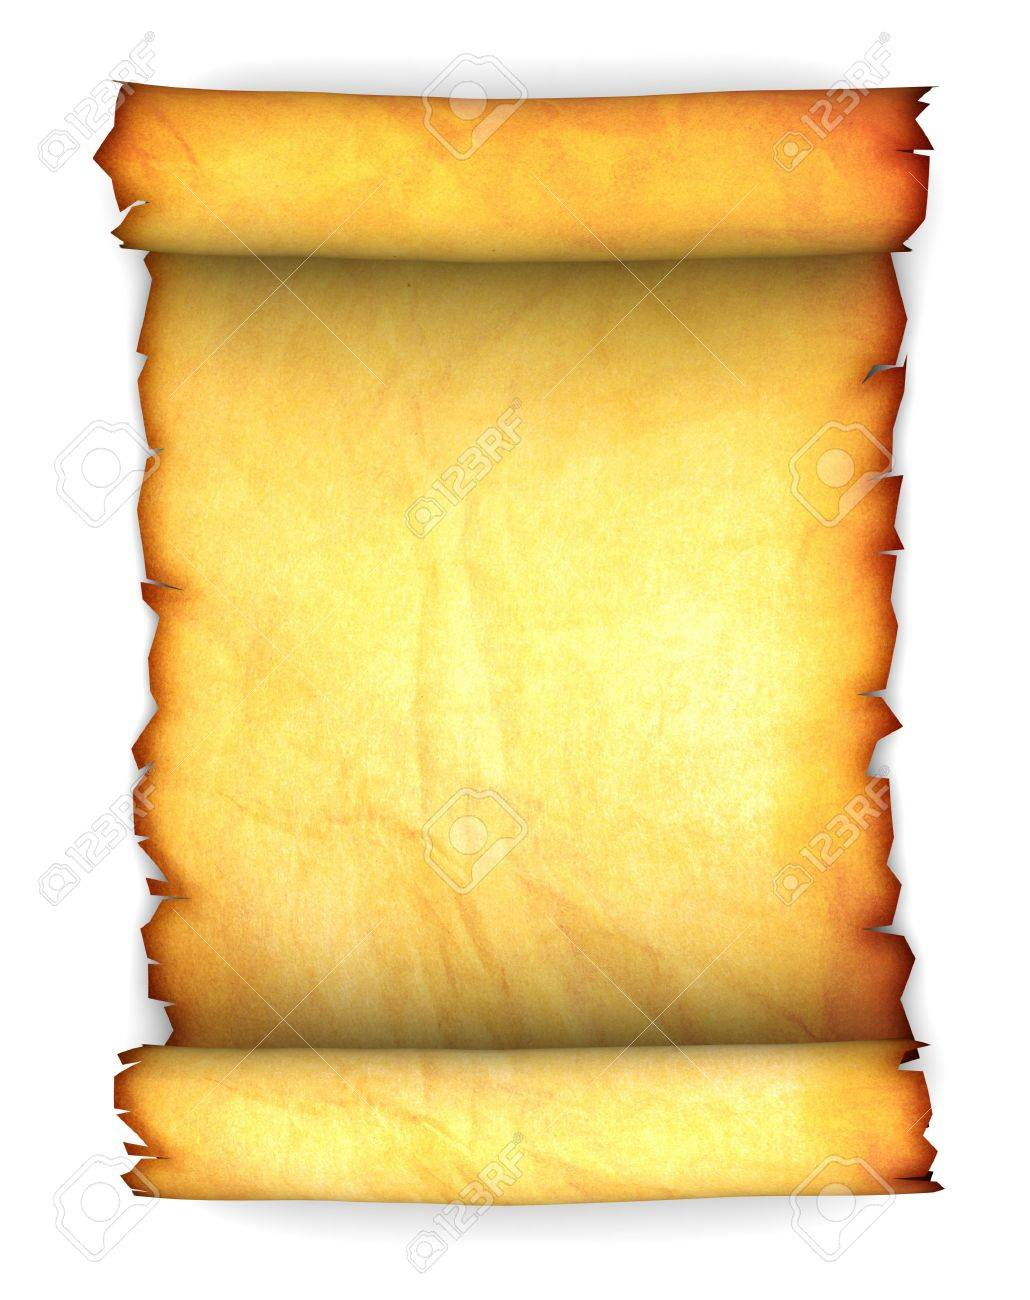 Abstract 3d Illustration Of Ancient Paper Scroll Over White Background Stock